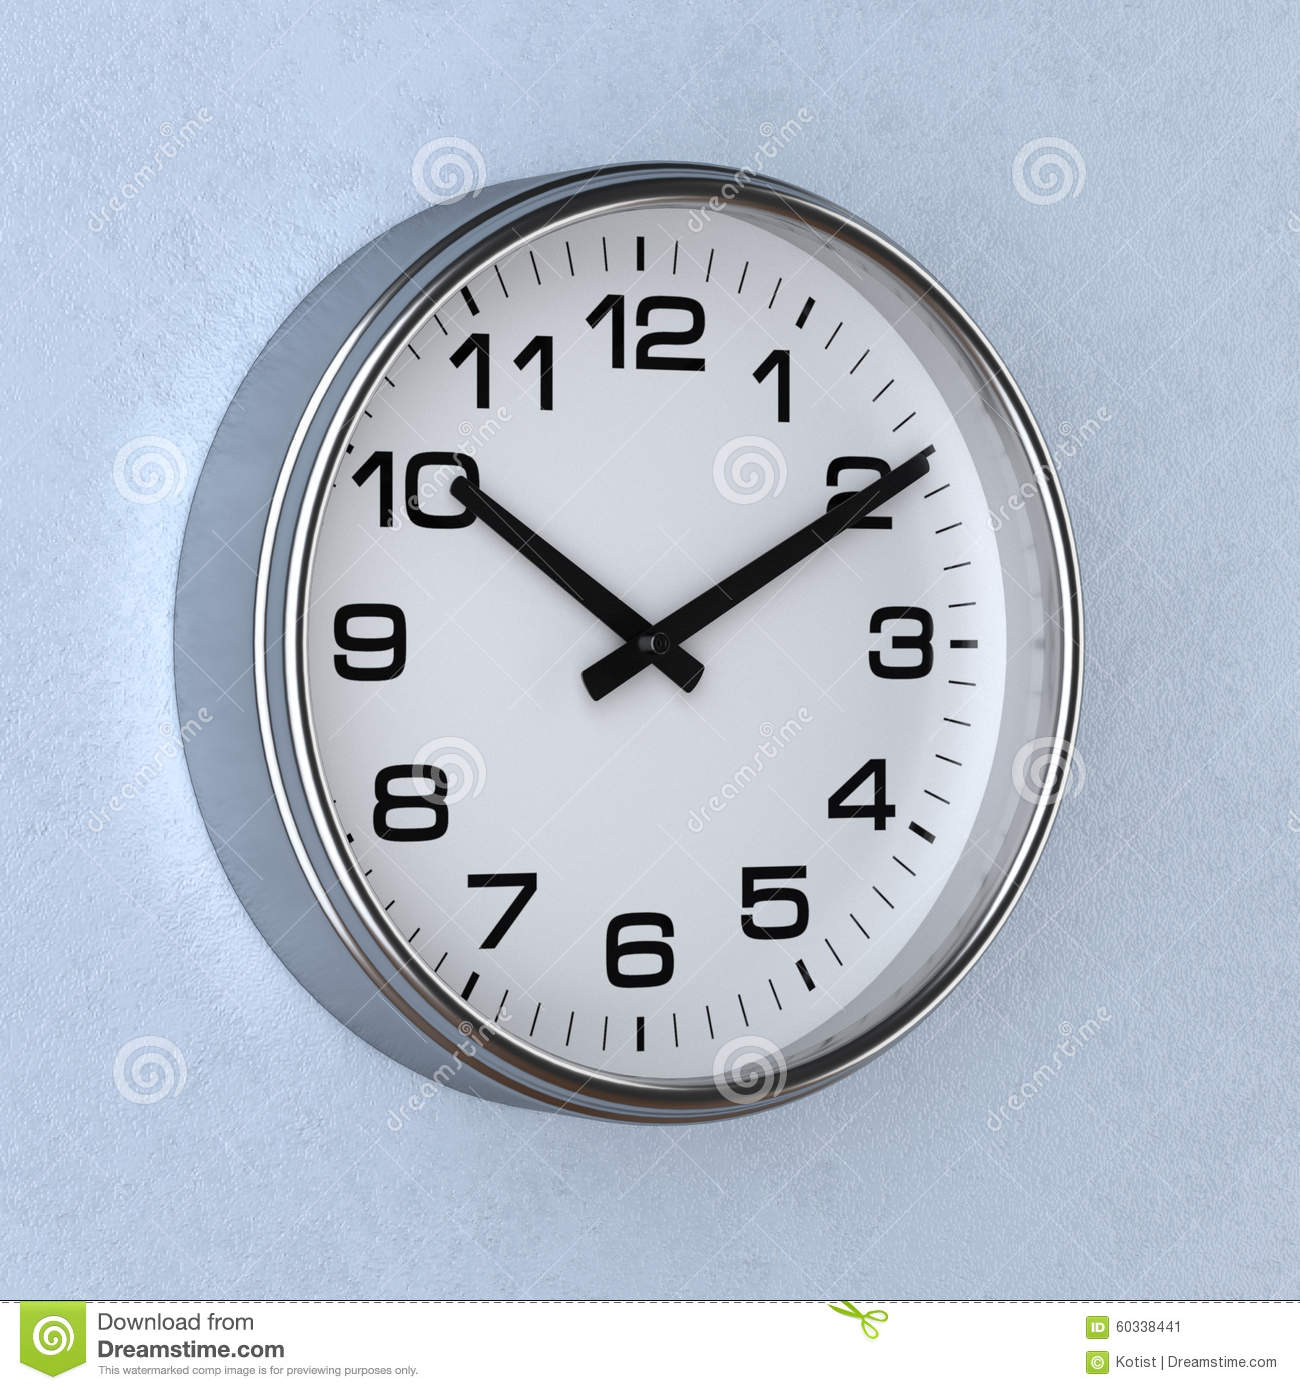 Watch or clock on the wall stock illustration image of icon royalty free illustration download watch or clock on the wall amipublicfo Choice Image